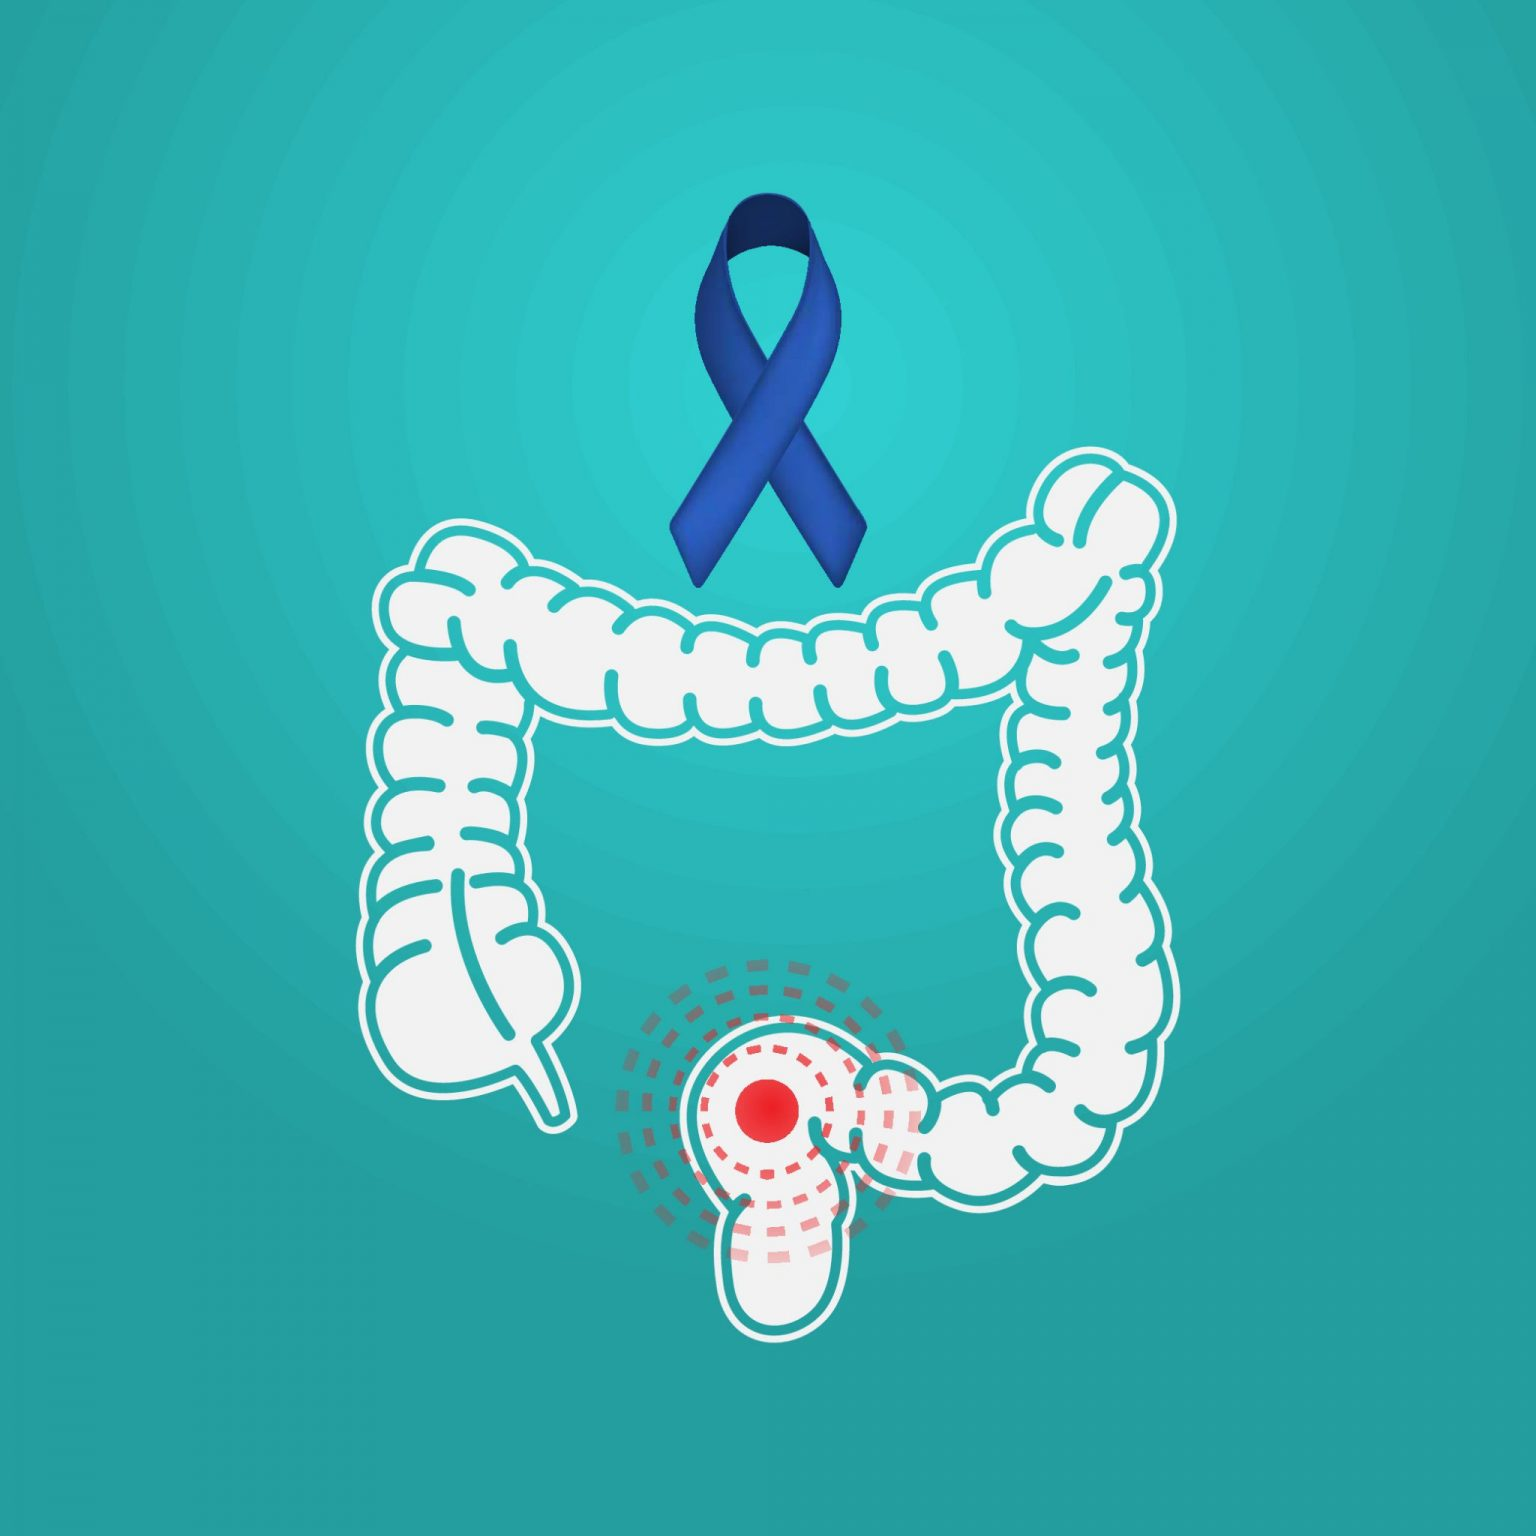 Colon Cancer: Knowing Your Risks and How to Cope